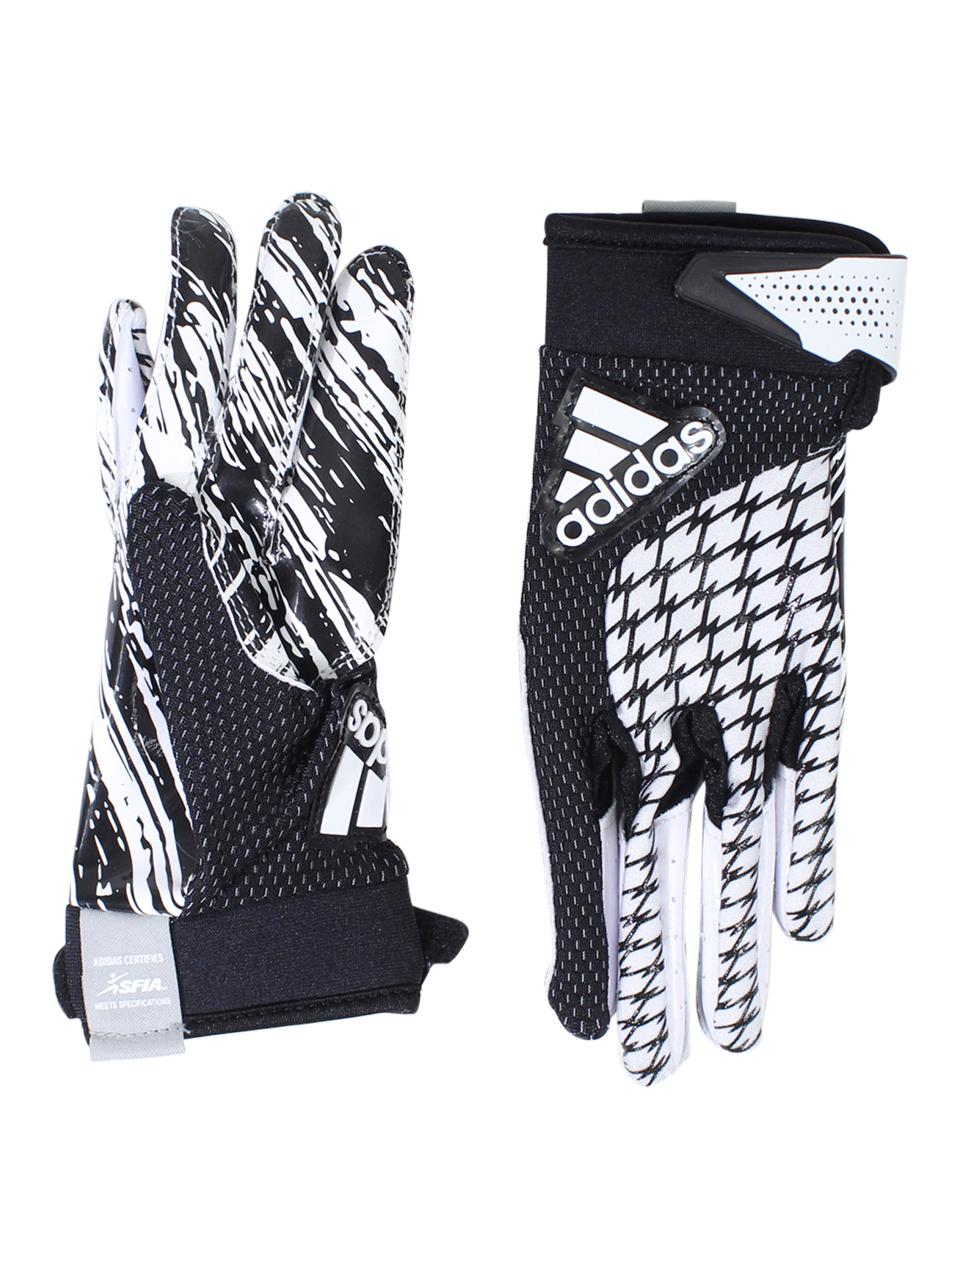 Image of Adidas Boy's Youth adiFAST 2.0 Padded Football Gloves - Black - X Large